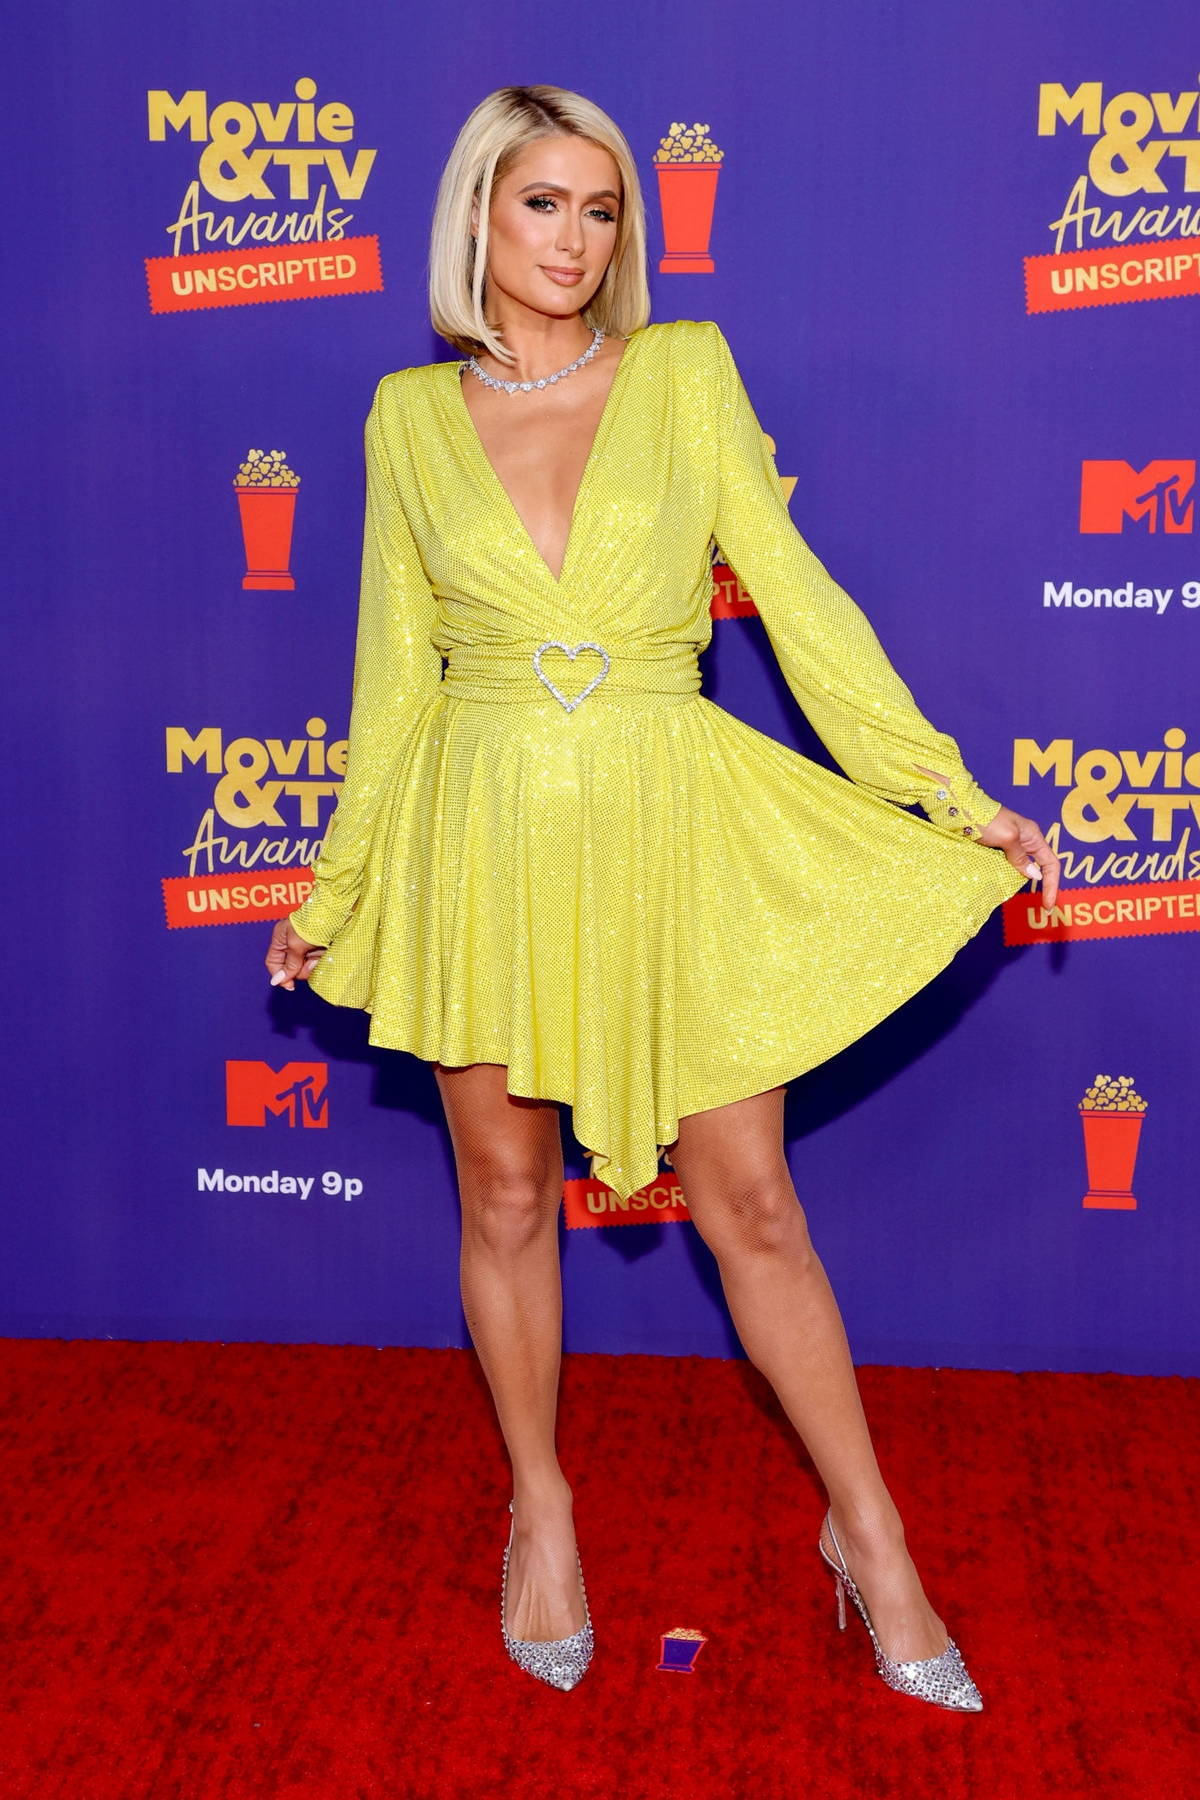 Paris Hilton attends the 2021 MTV Movie & TV Unscripted in Los Angeles